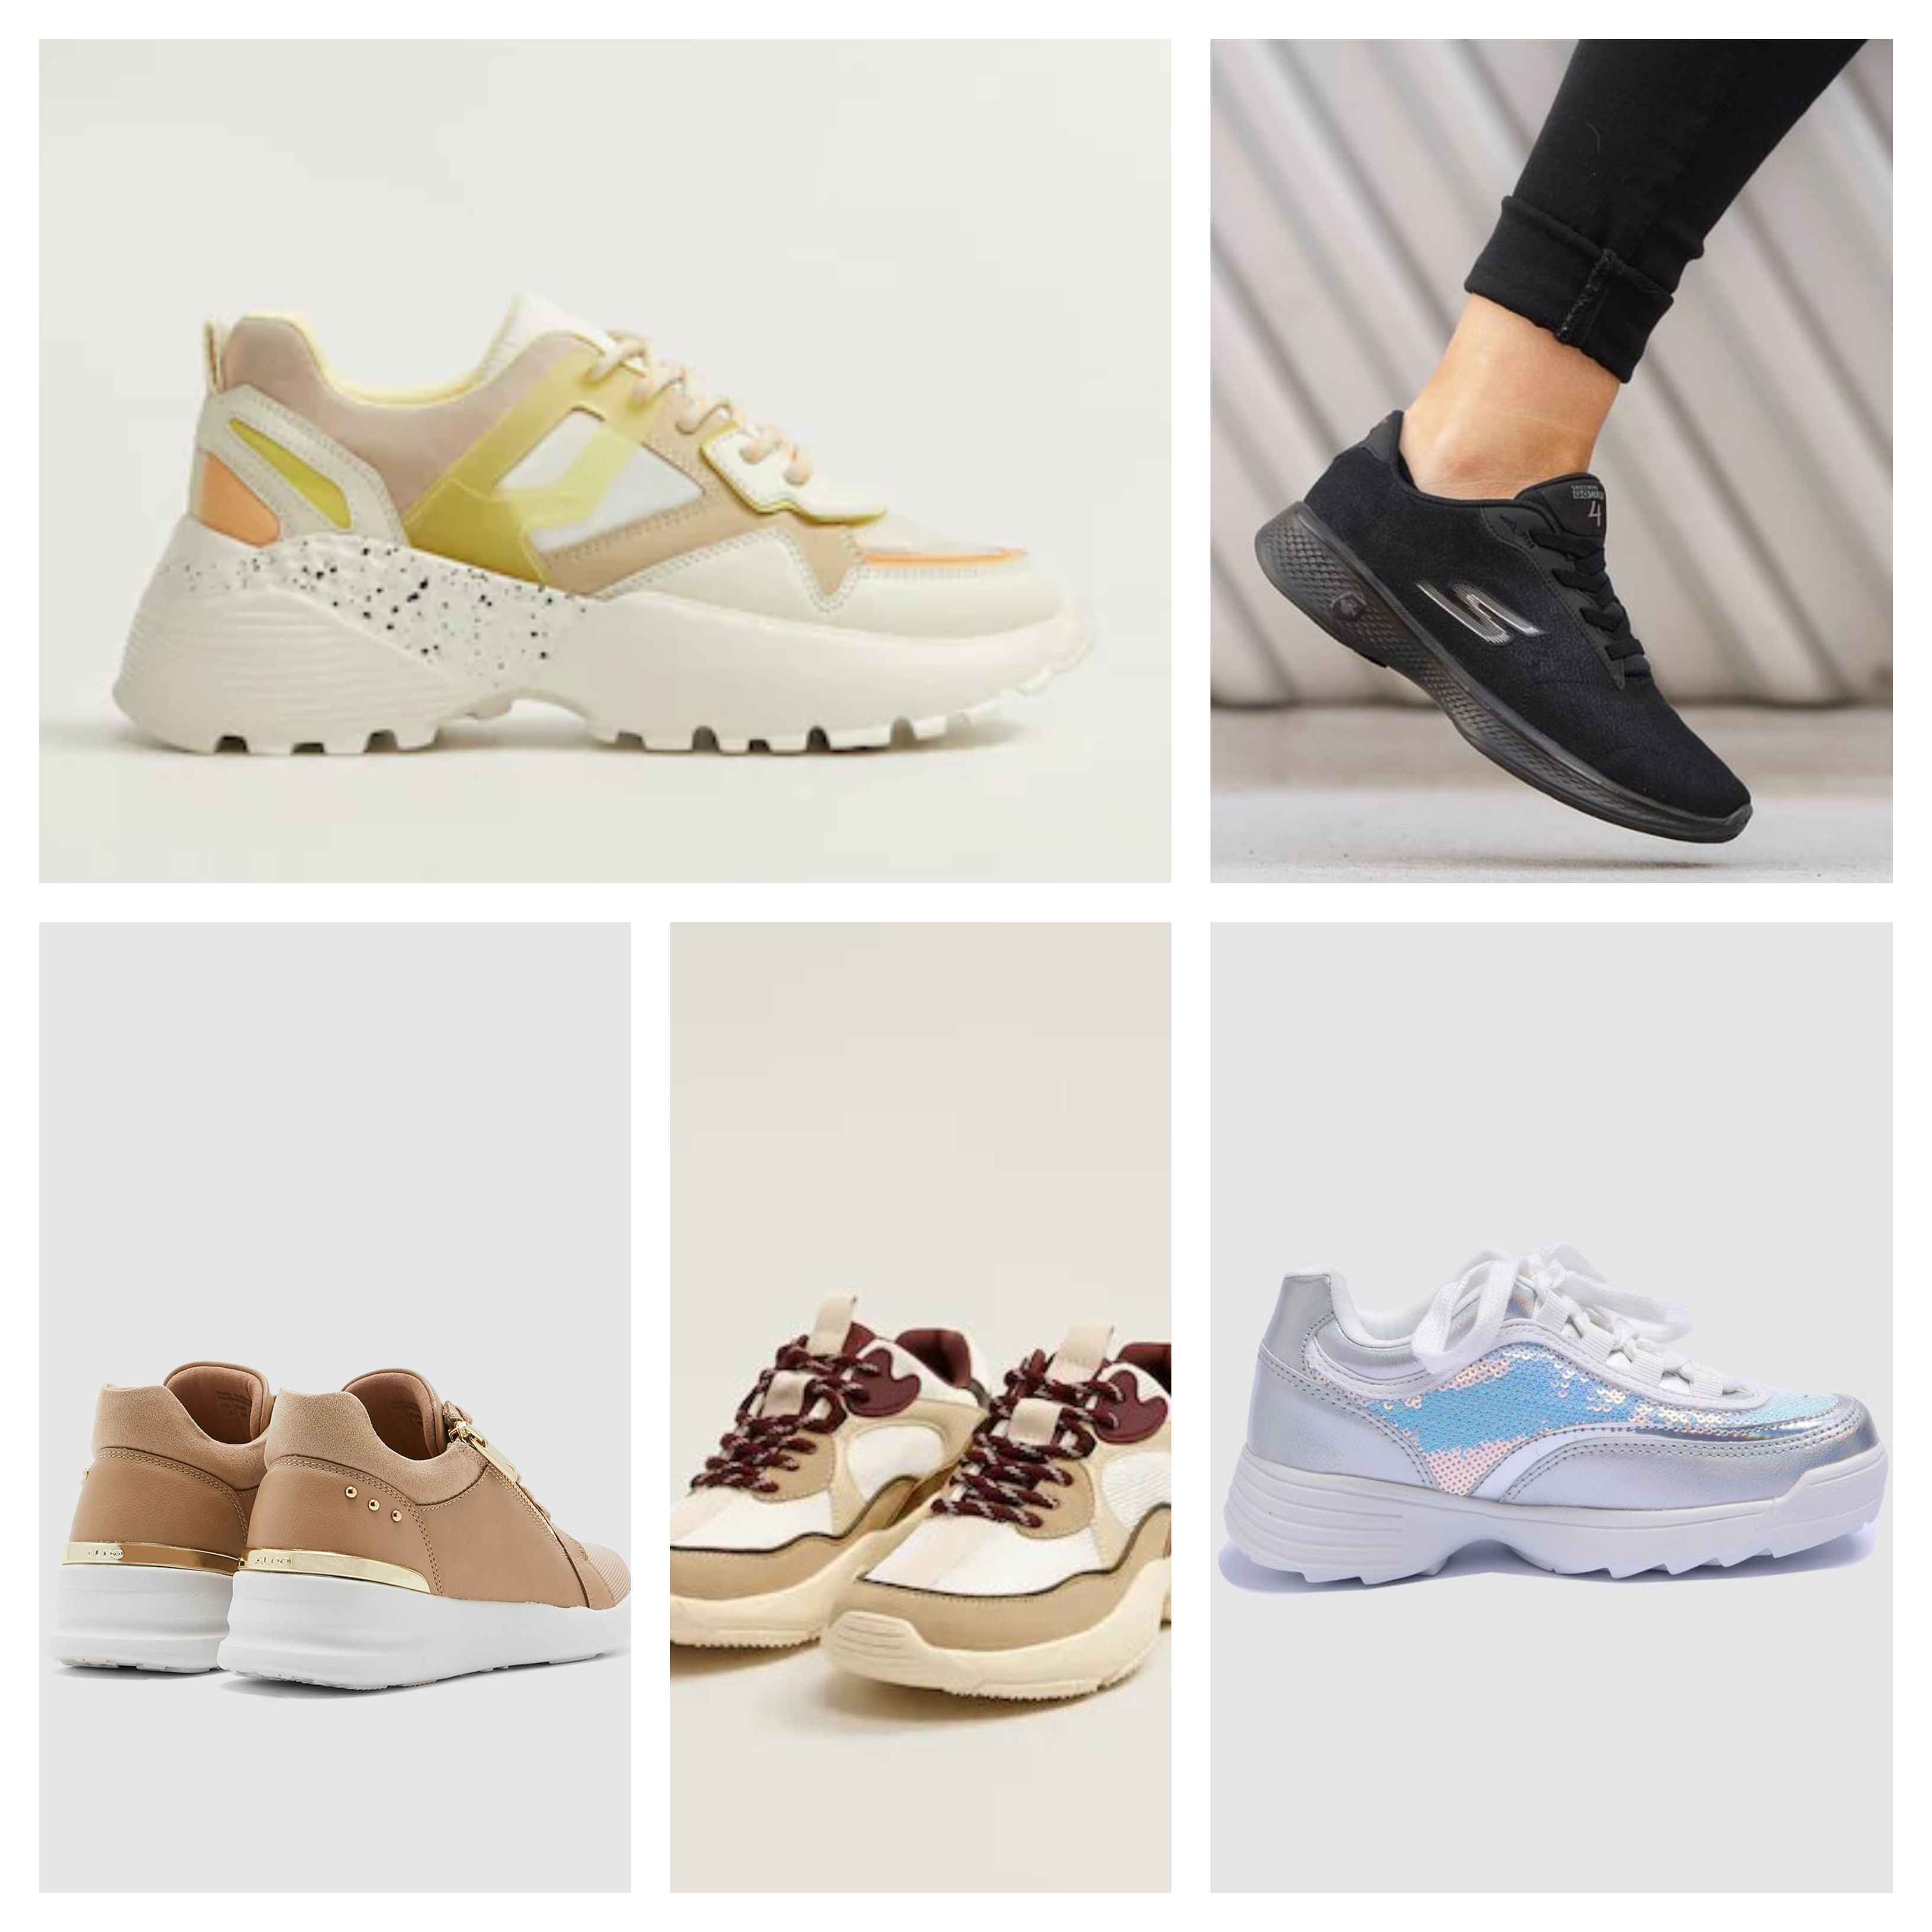 Sneakers? Sneakers. Sneakers! Where to